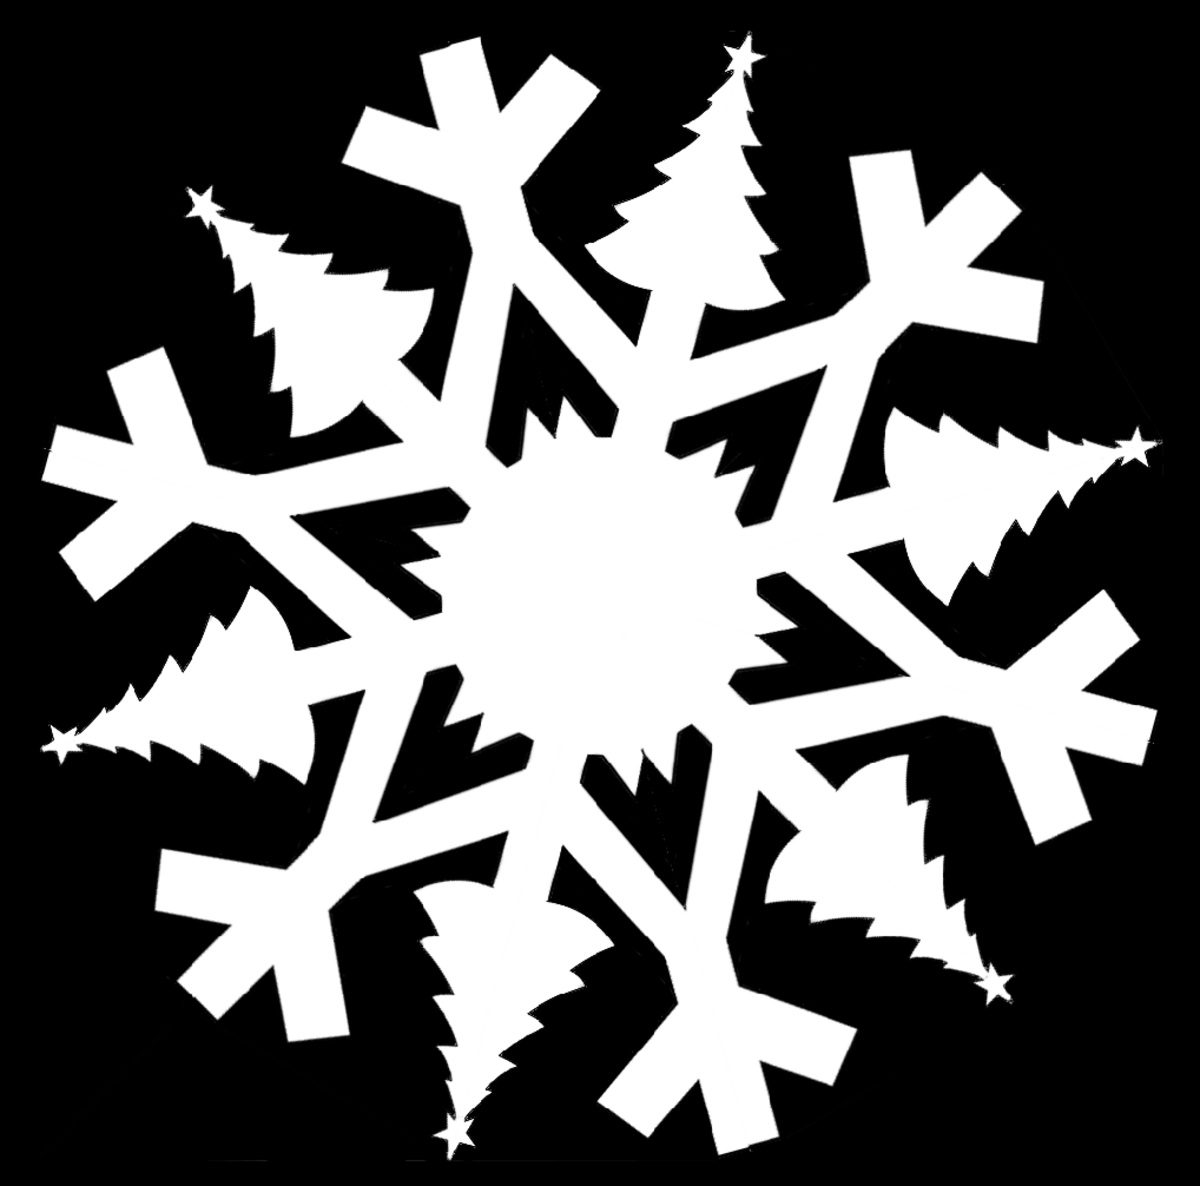 xmas snowflake template  5 Christmas-Themed Paper Snowflake Templates | Holidappy